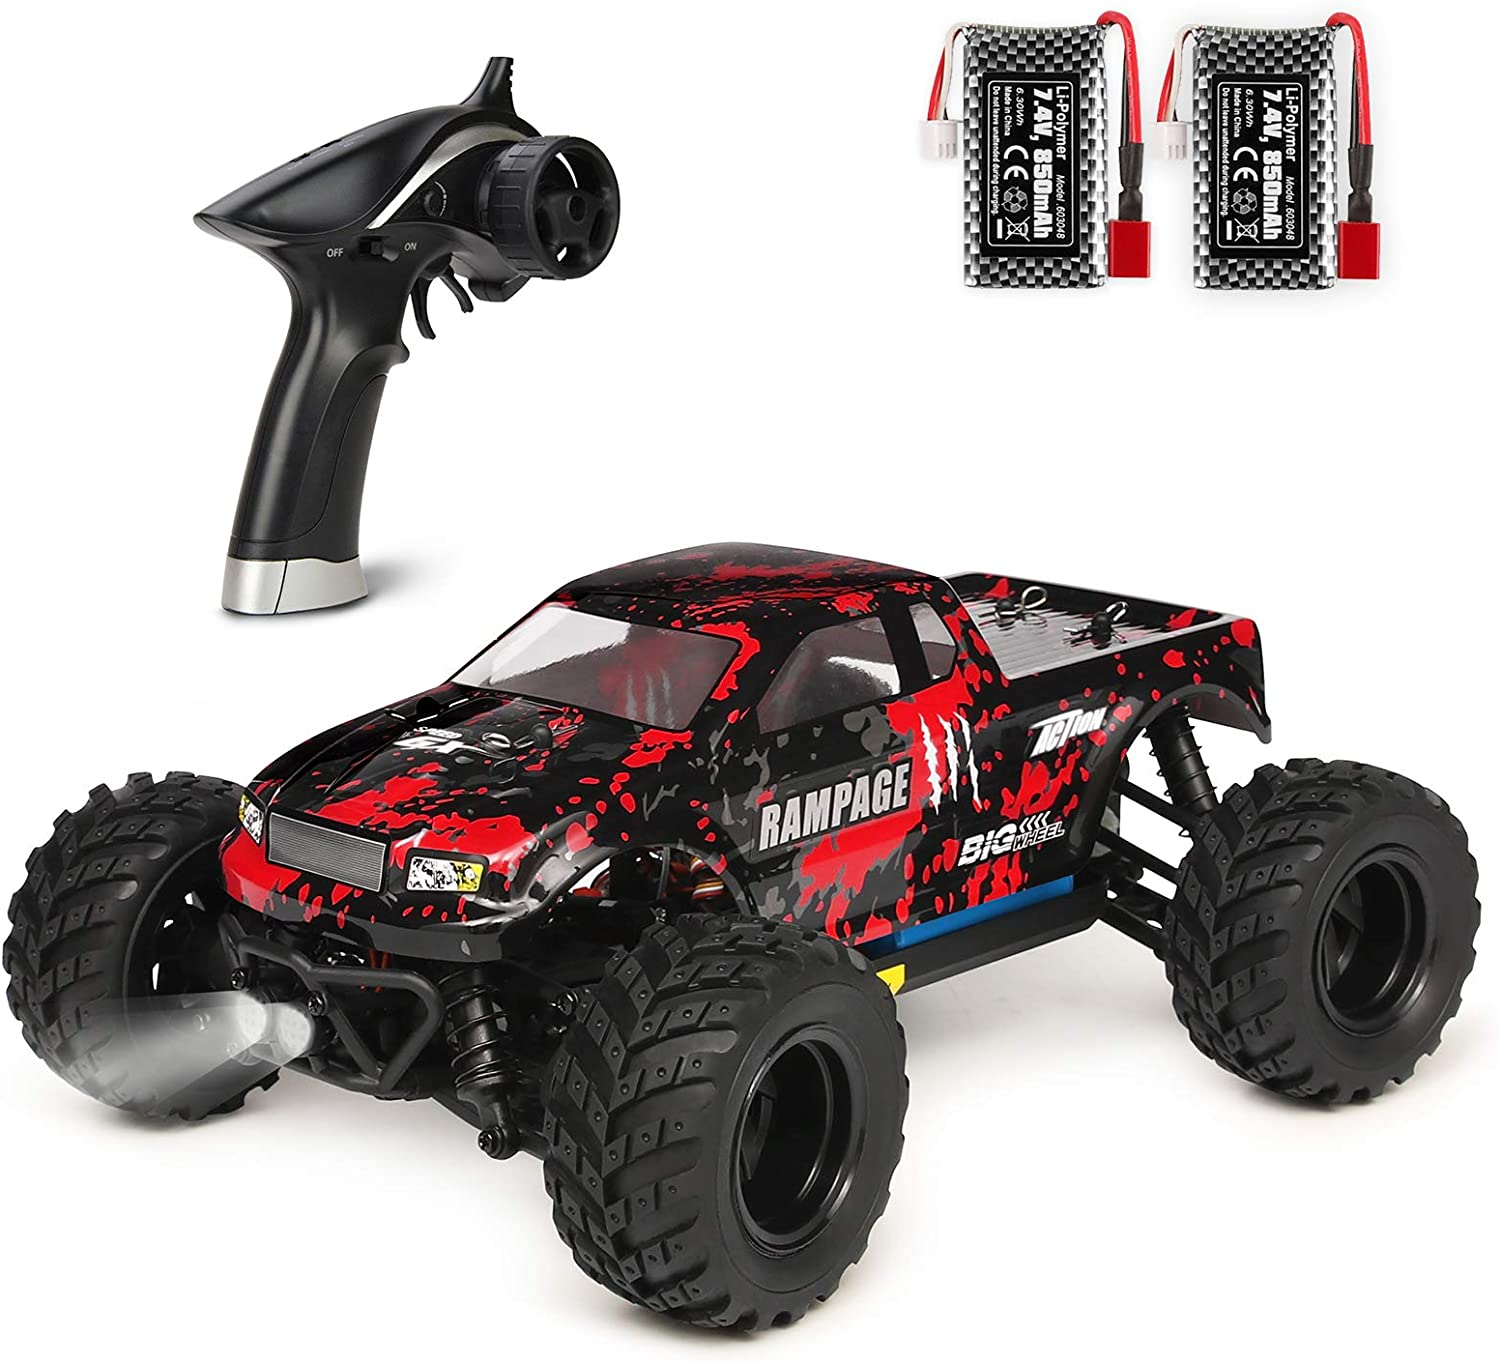 HAIBOXING 1:18 Scale All Terrain RC Car 36KM/H High Speed, 4WD Electric Vehicle,2.4 GHz Radio Controller, Included 2 Batteries and A Charger,Waterproof Off-Road Truck (Red): Toys & Games